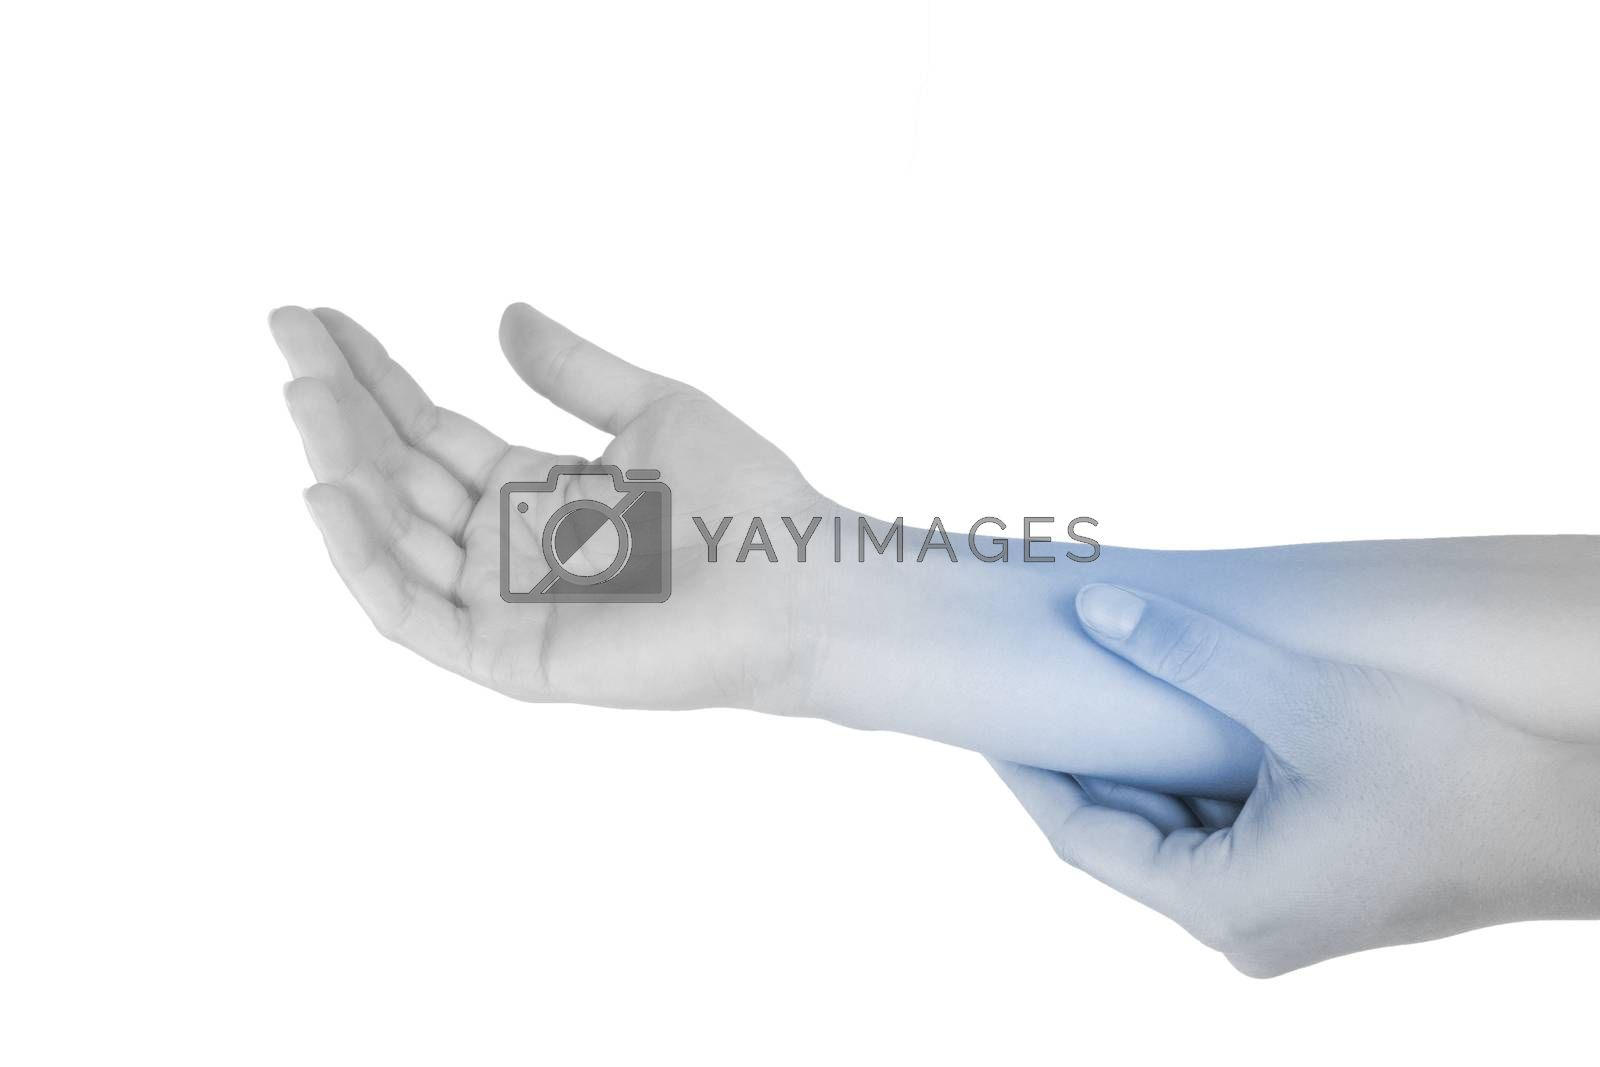 Mouse elbow. Repetitive stress injury. Forearm muscle strain. Female hand touching forearm isolated on white background.